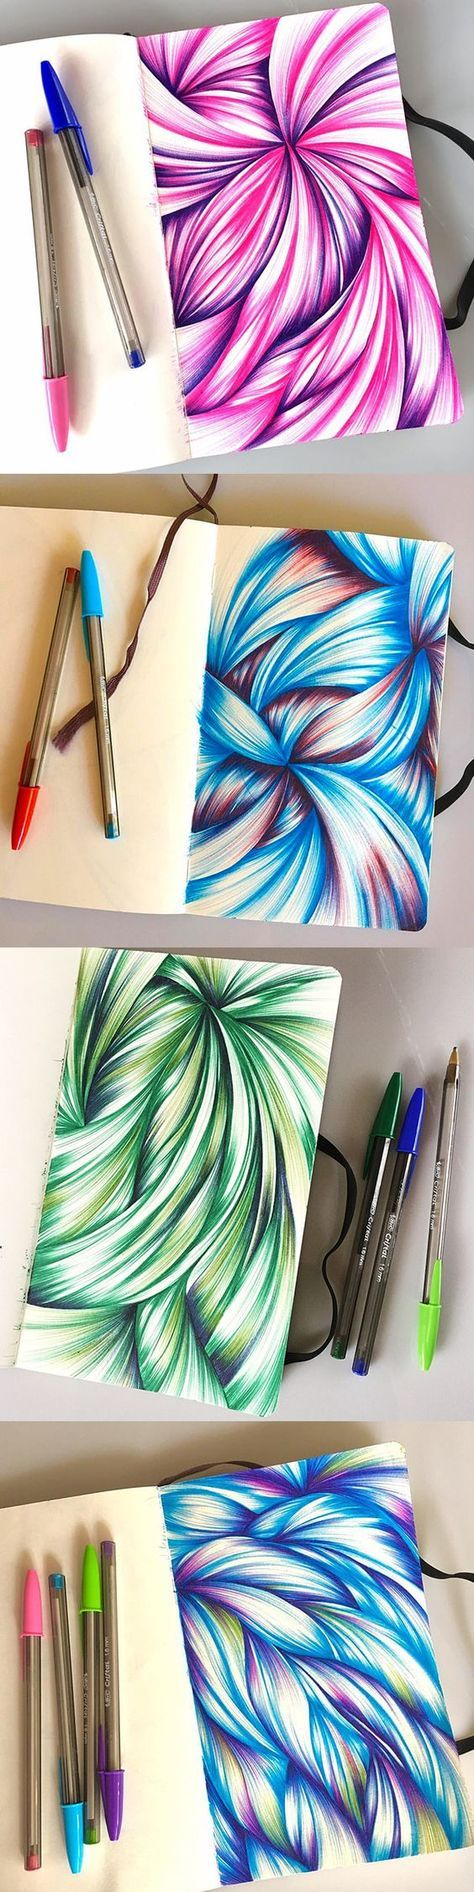 Multi-color ballpoint sketchbook drawings from 2016. Click through to see more.